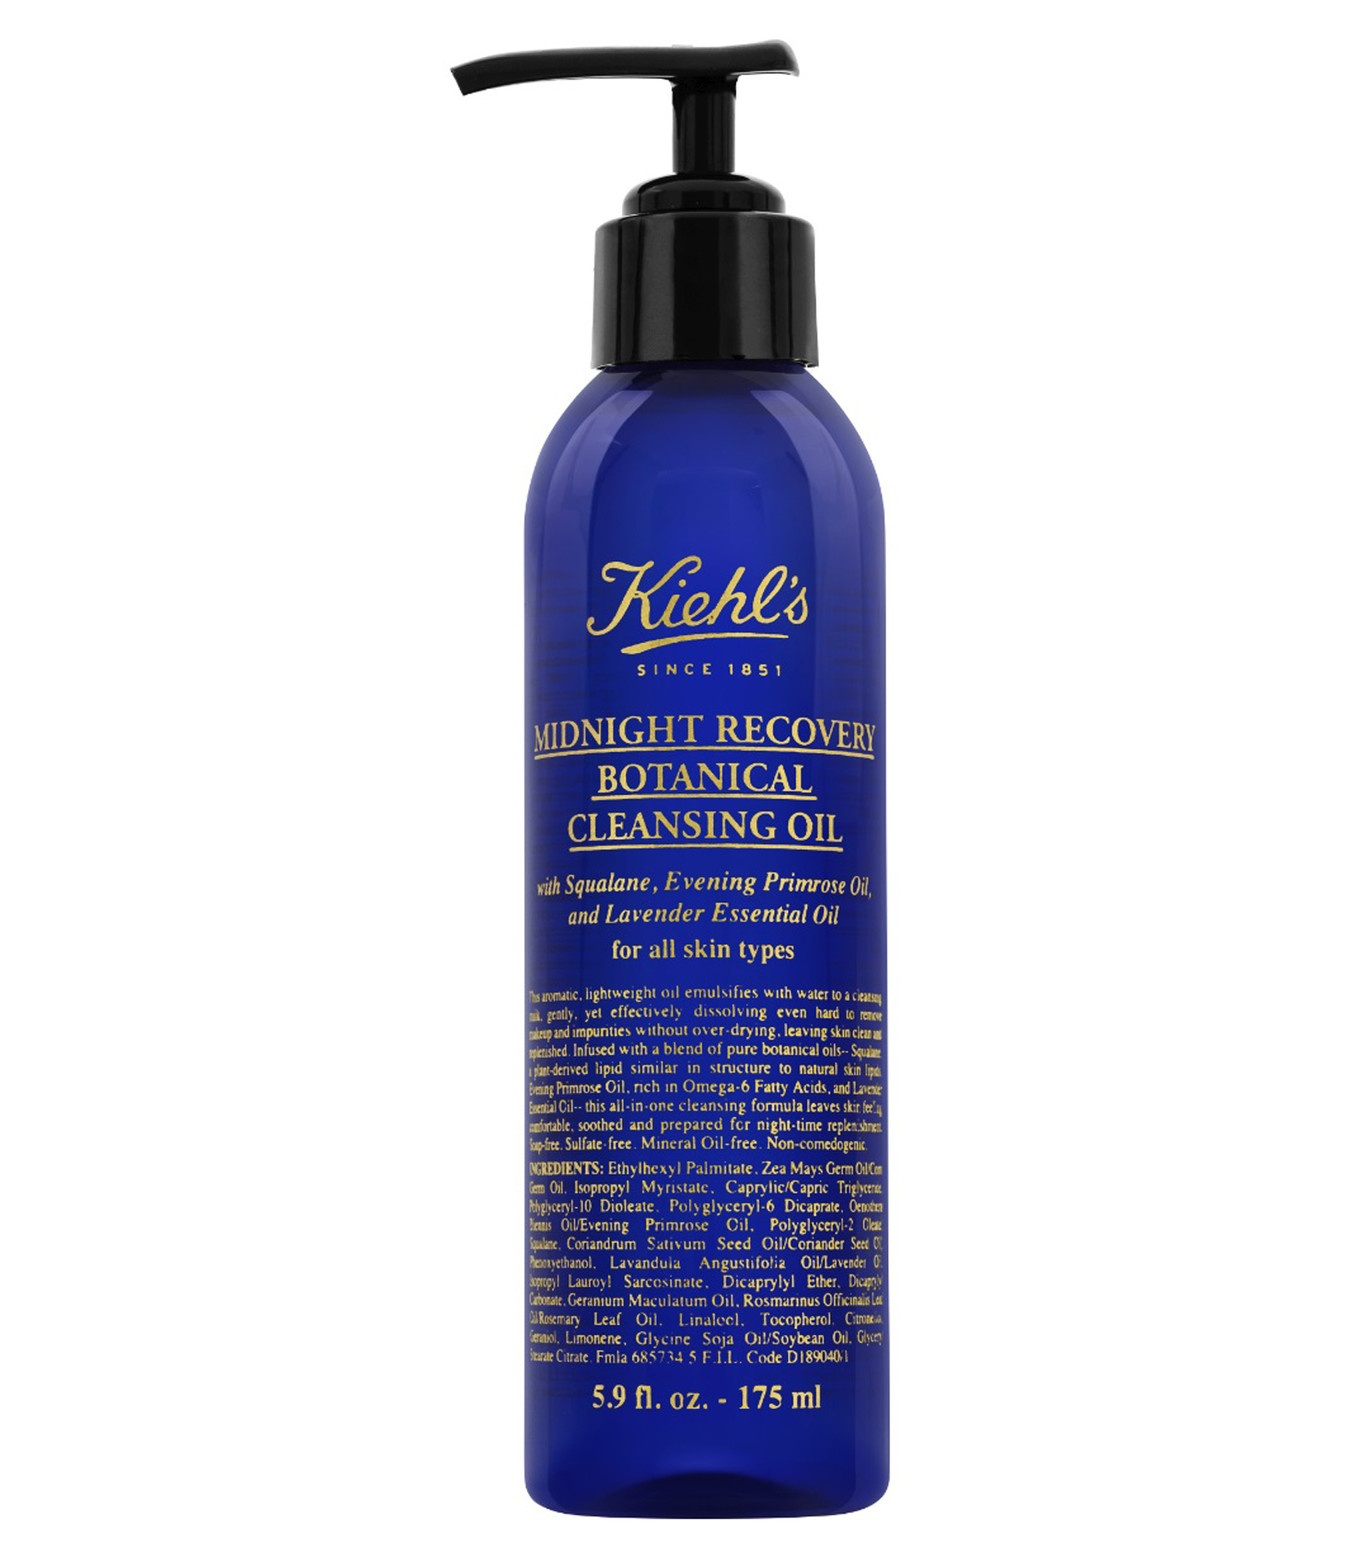 Midnight Recovery Botanical Cleansing Oil' de Kiehl's